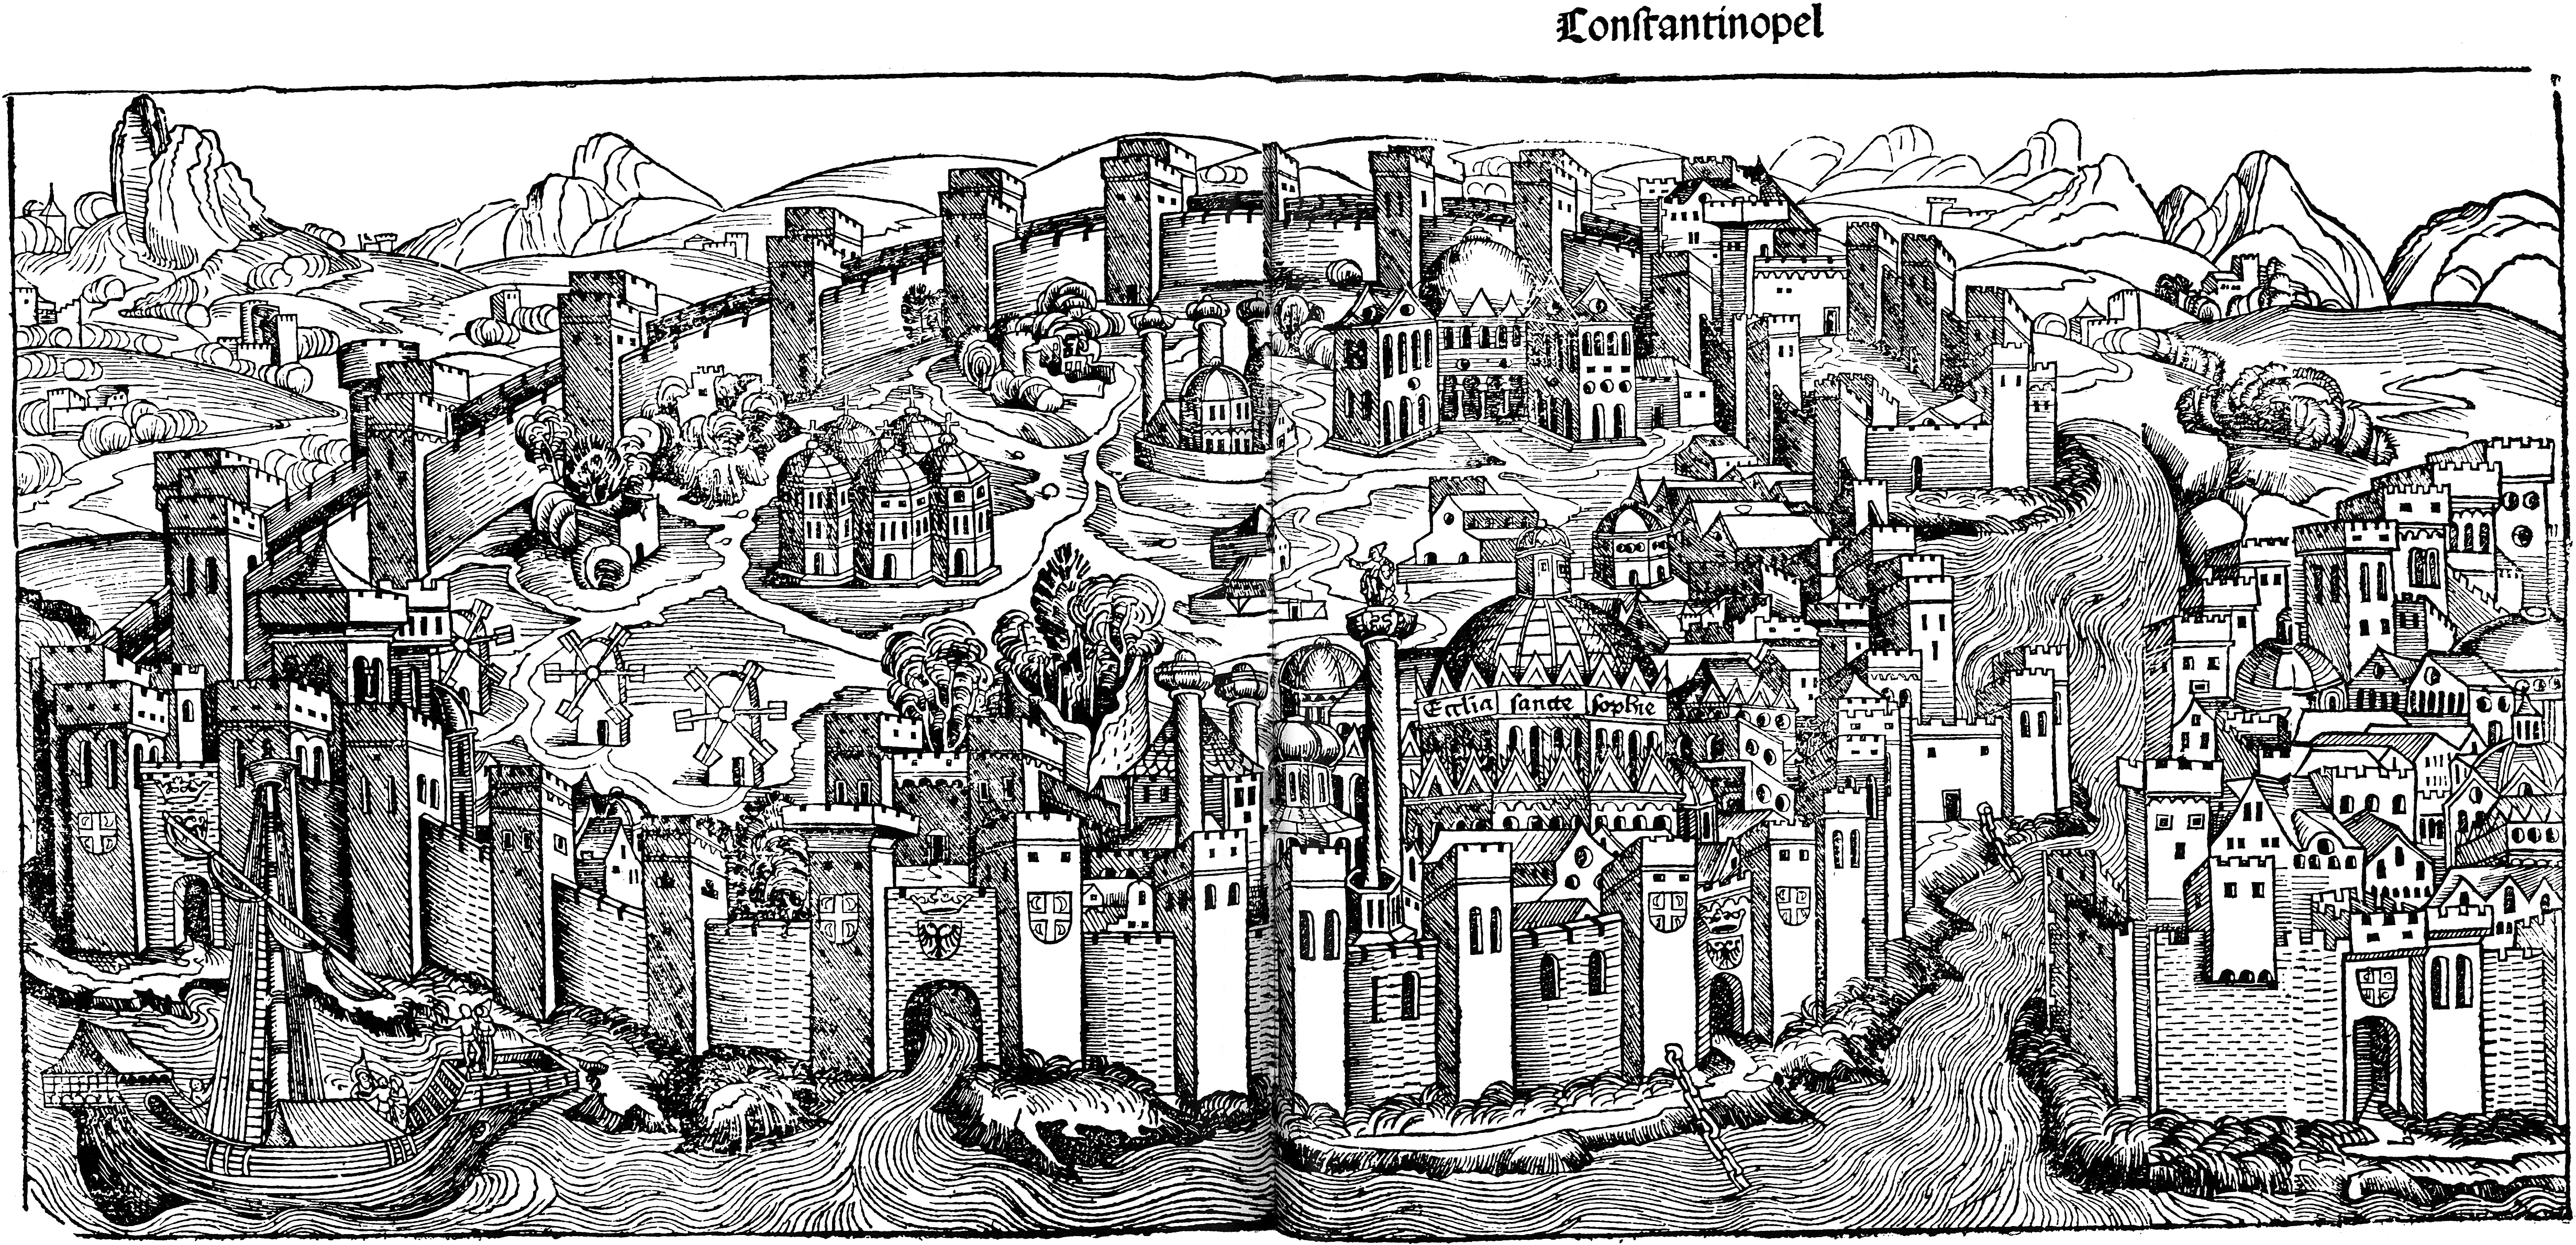 File:Constantinople, woodcut from Schedel's Weltchronik (1493).png